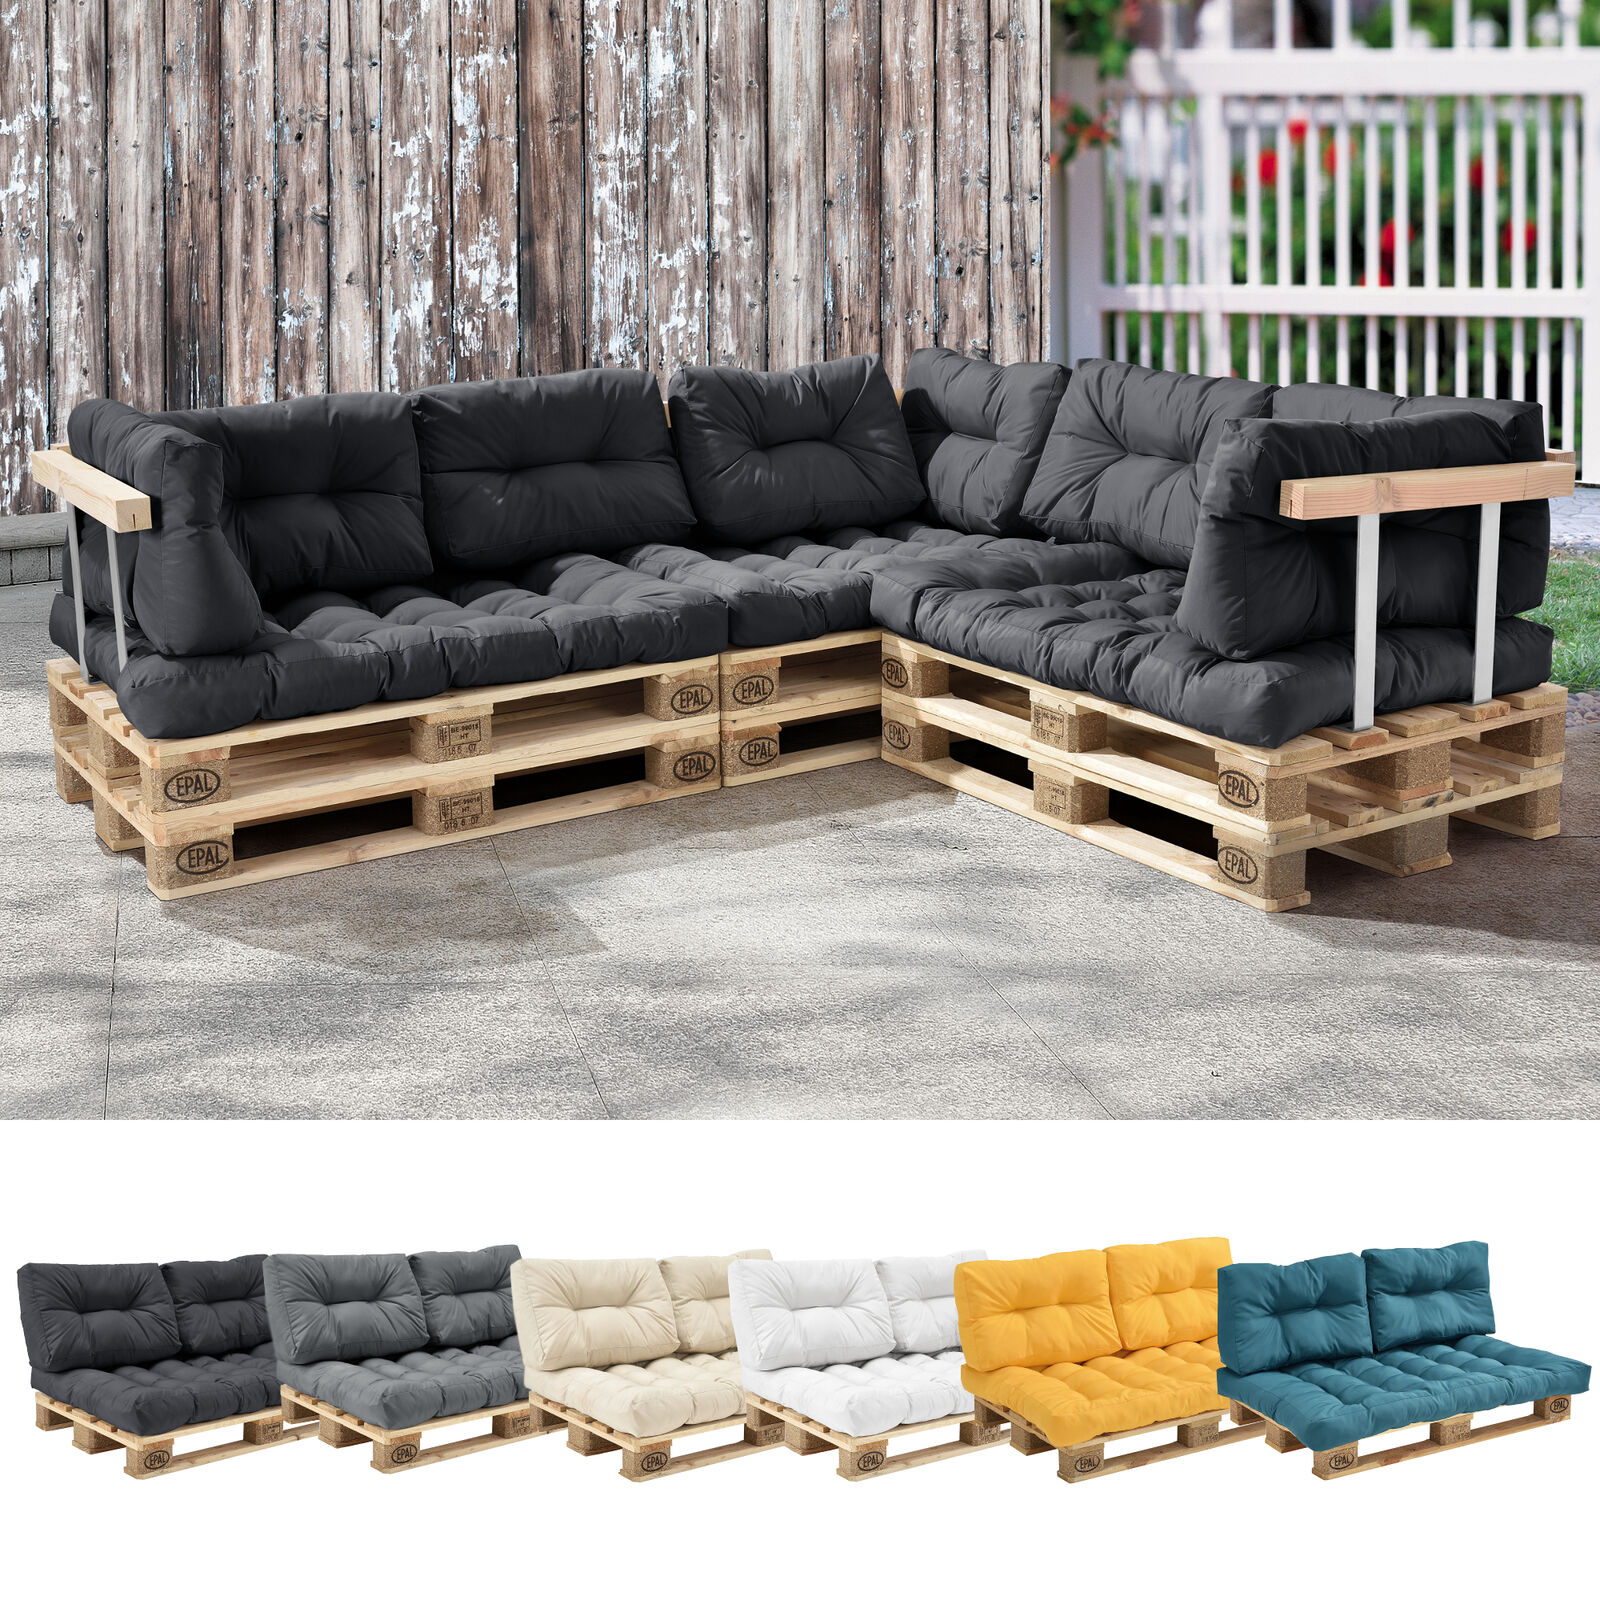 en casa palettenkissen in outdoor paletten kissen sofa polster sitzauflage eur 32 99. Black Bedroom Furniture Sets. Home Design Ideas